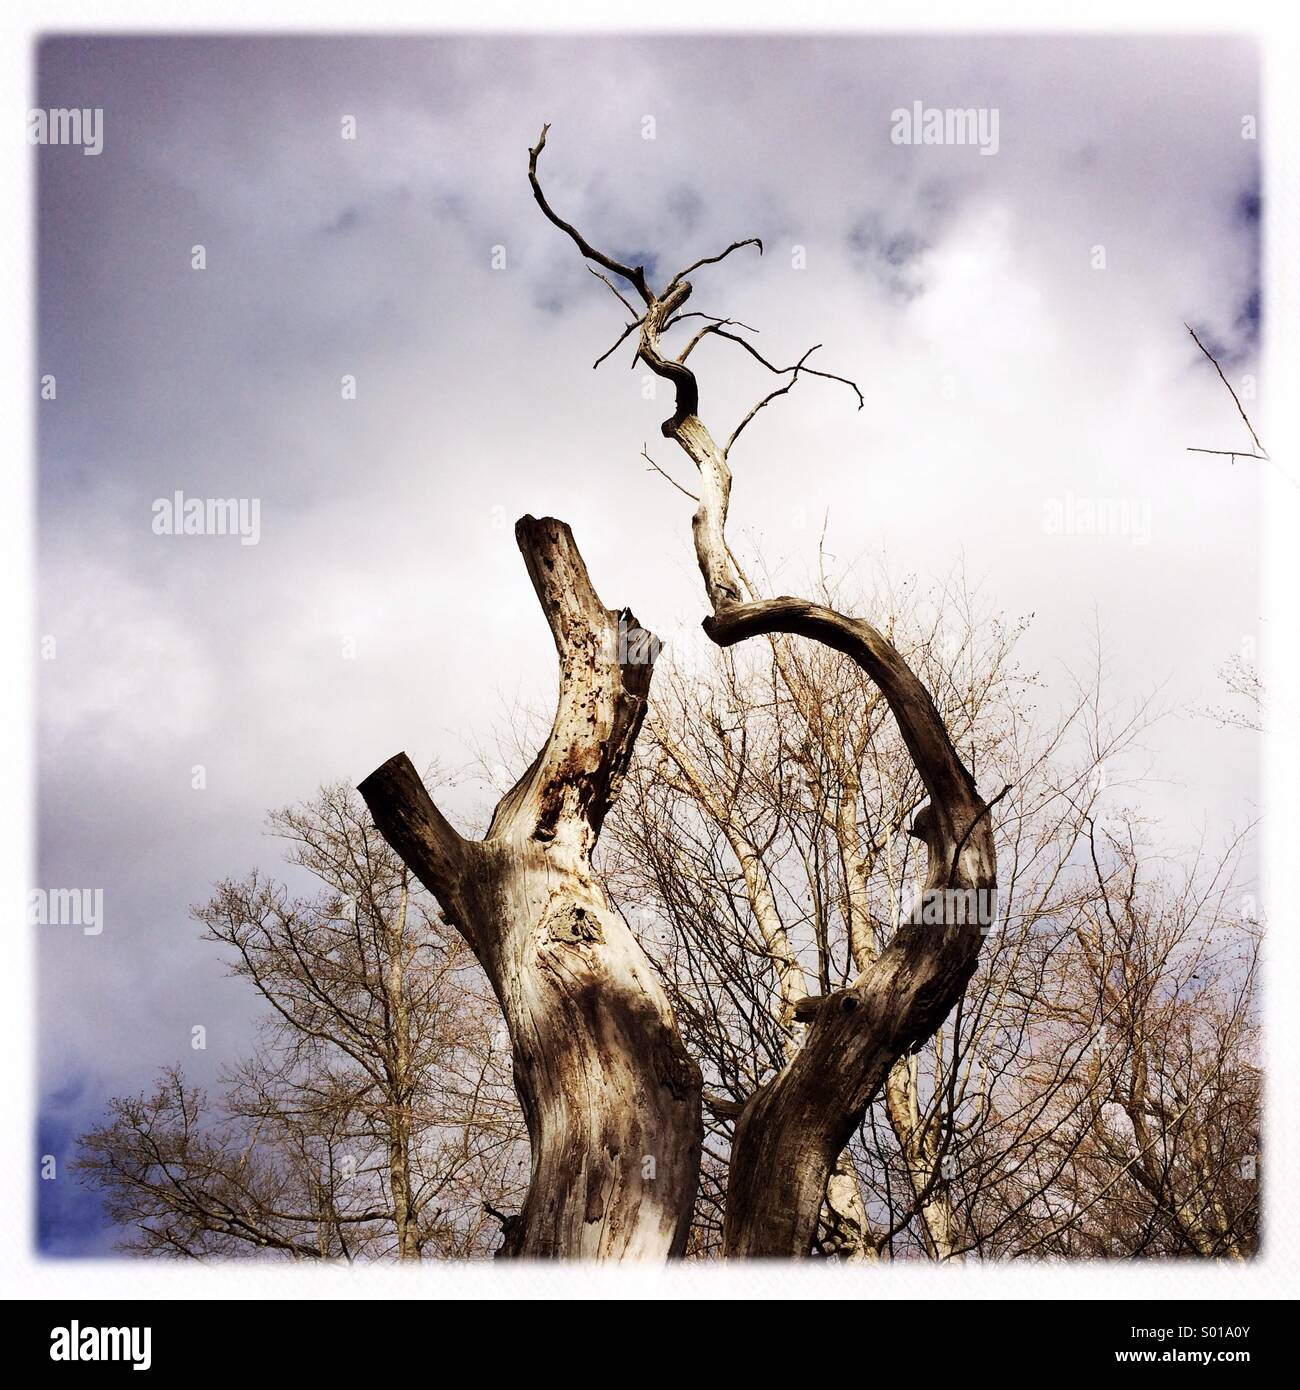 Remarkable tree in nature park Schönbuch Germany - Stock Image